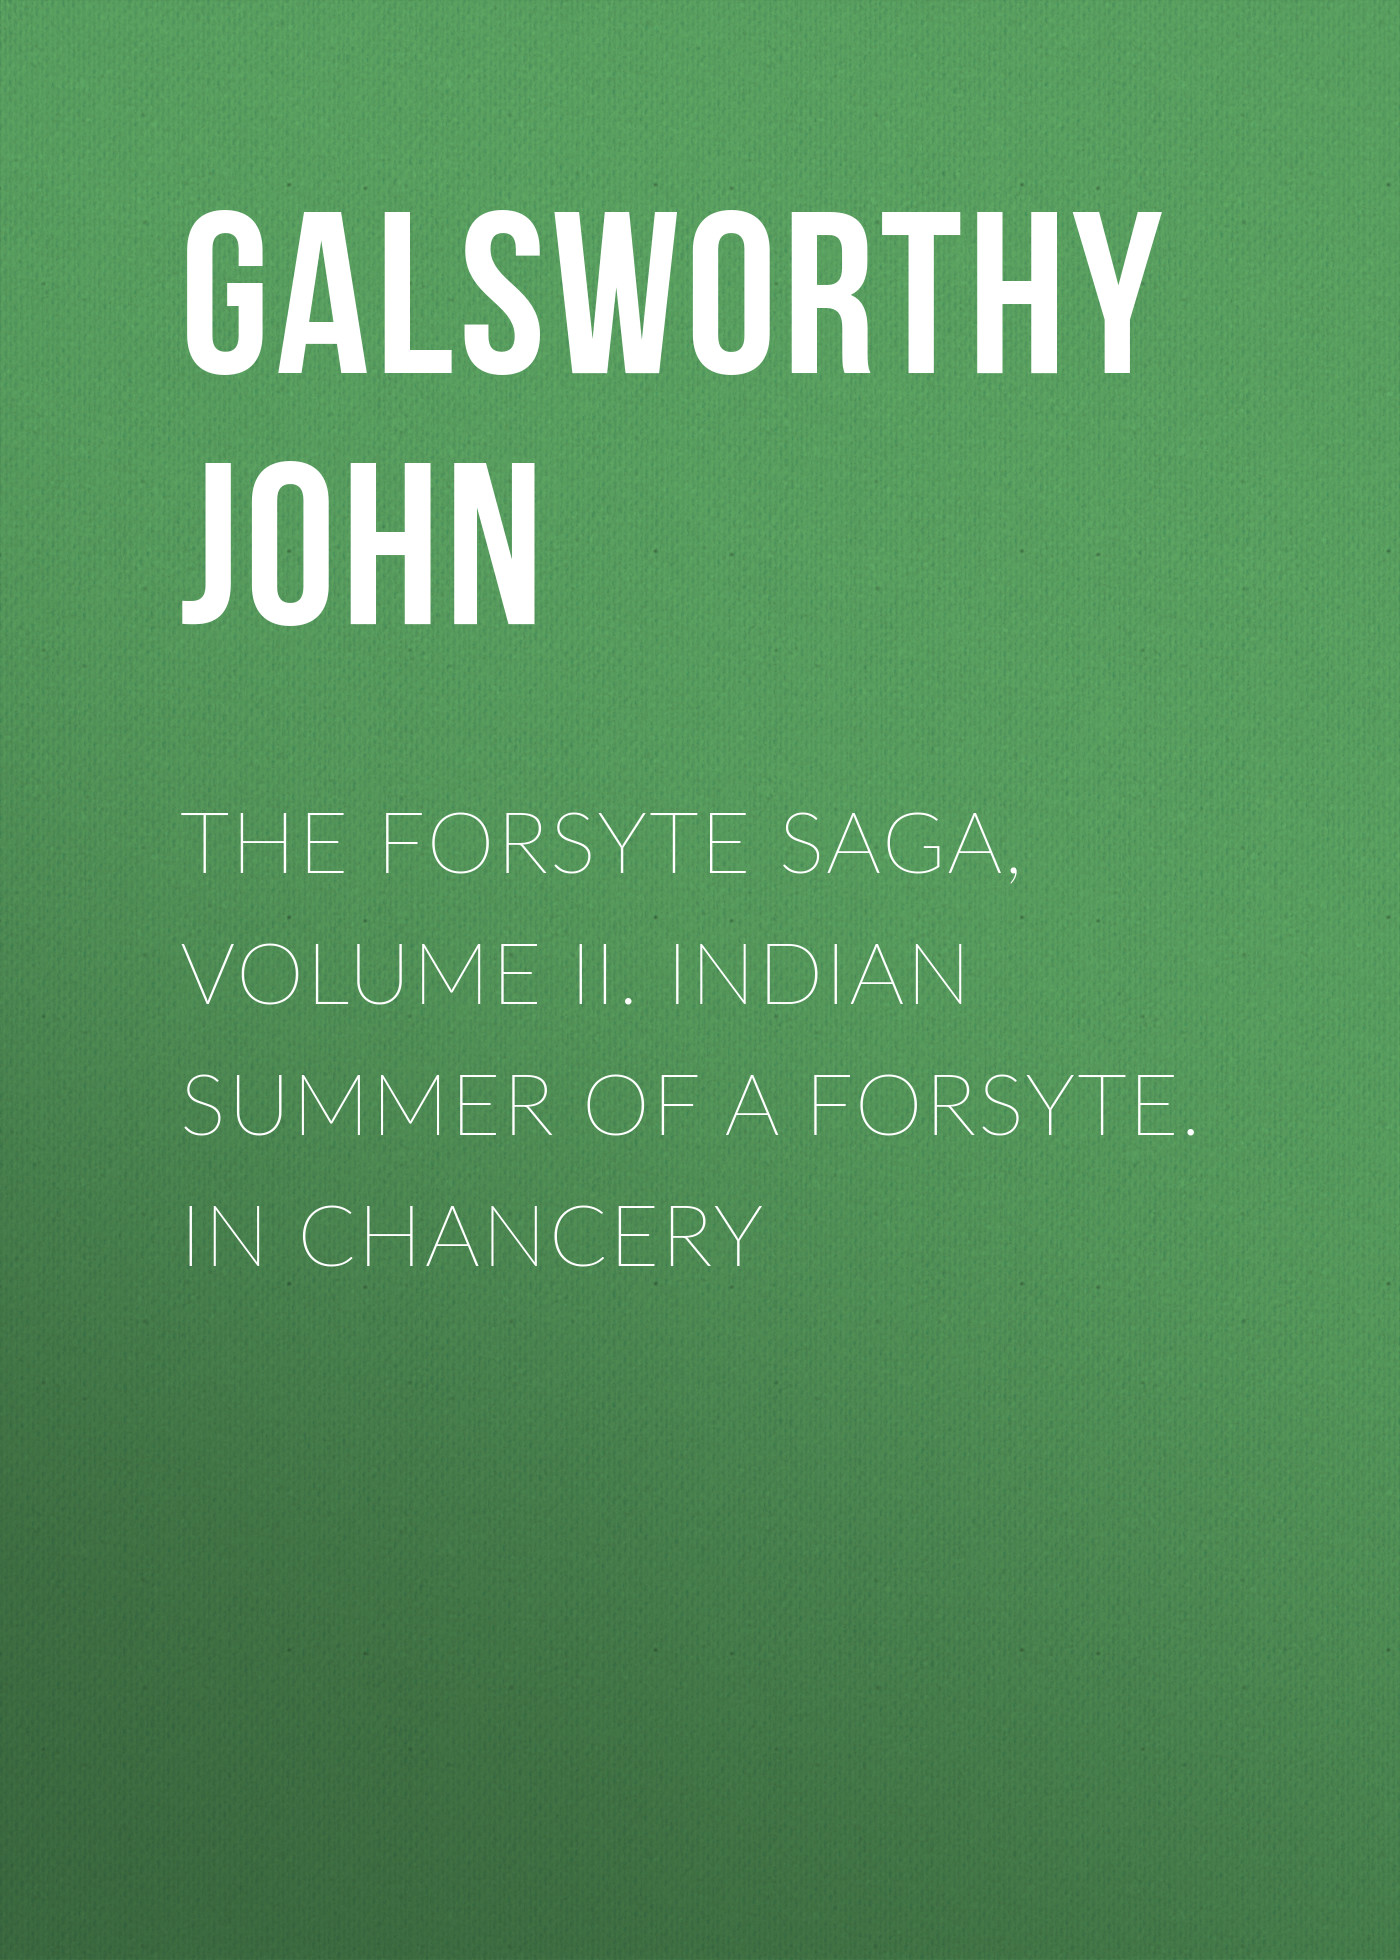 Galsworthy John The Forsyte Saga, Volume II. Indian Summer of a Forsyte. In Chancery все цены